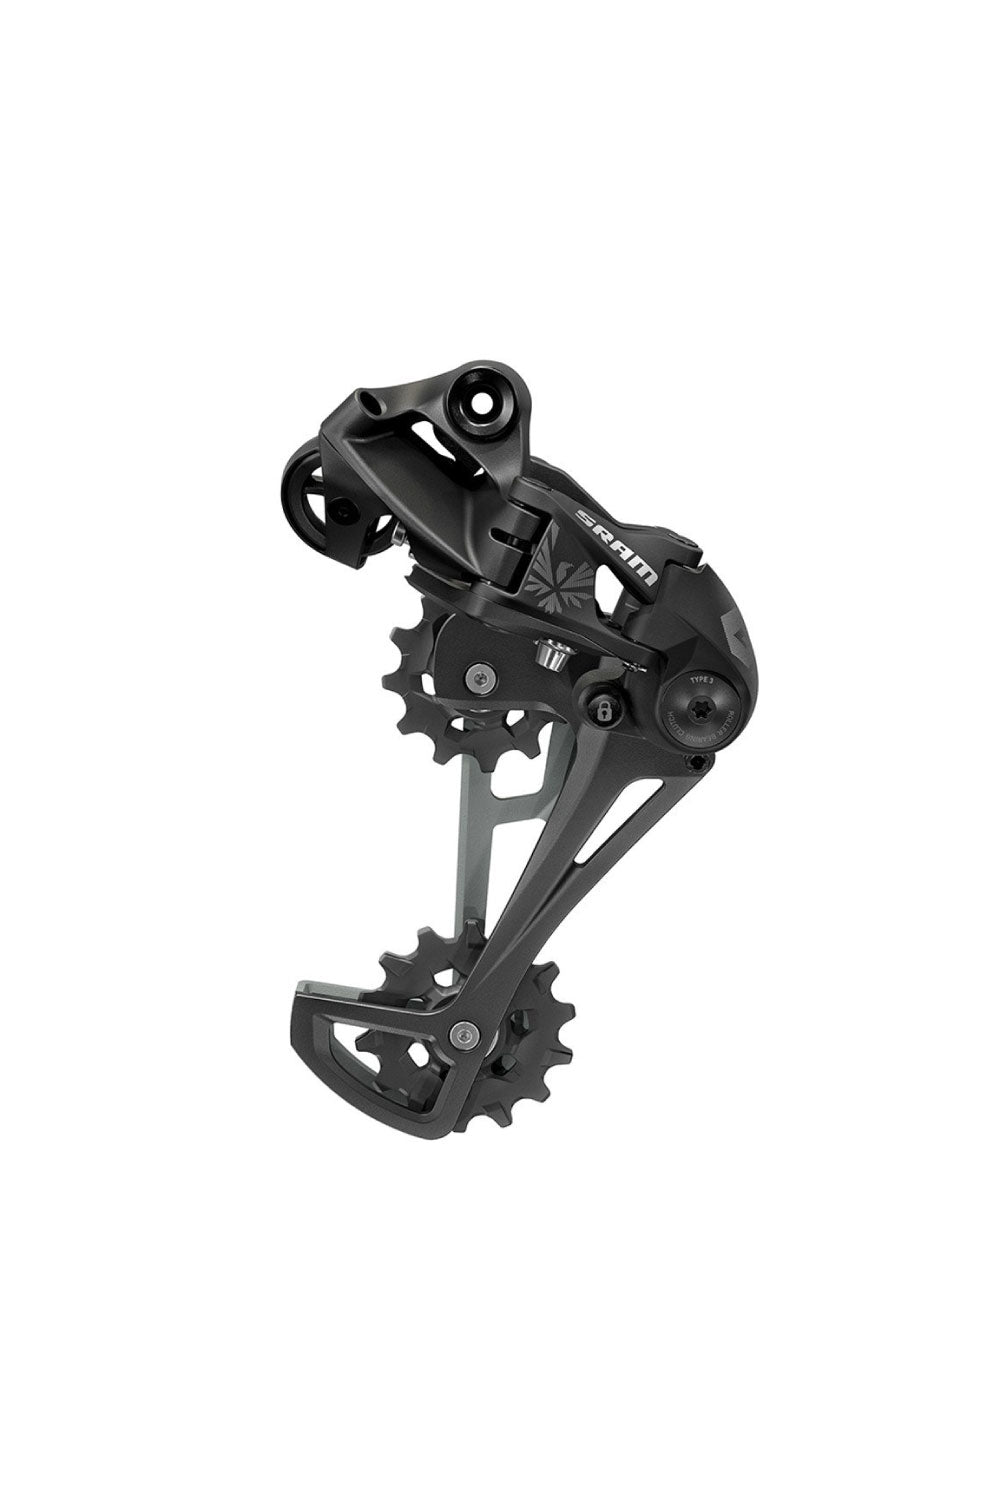 SRAM GX EAGLE TYPE 3 REAR DERAILLEUR, 12 SPEED, BLACK